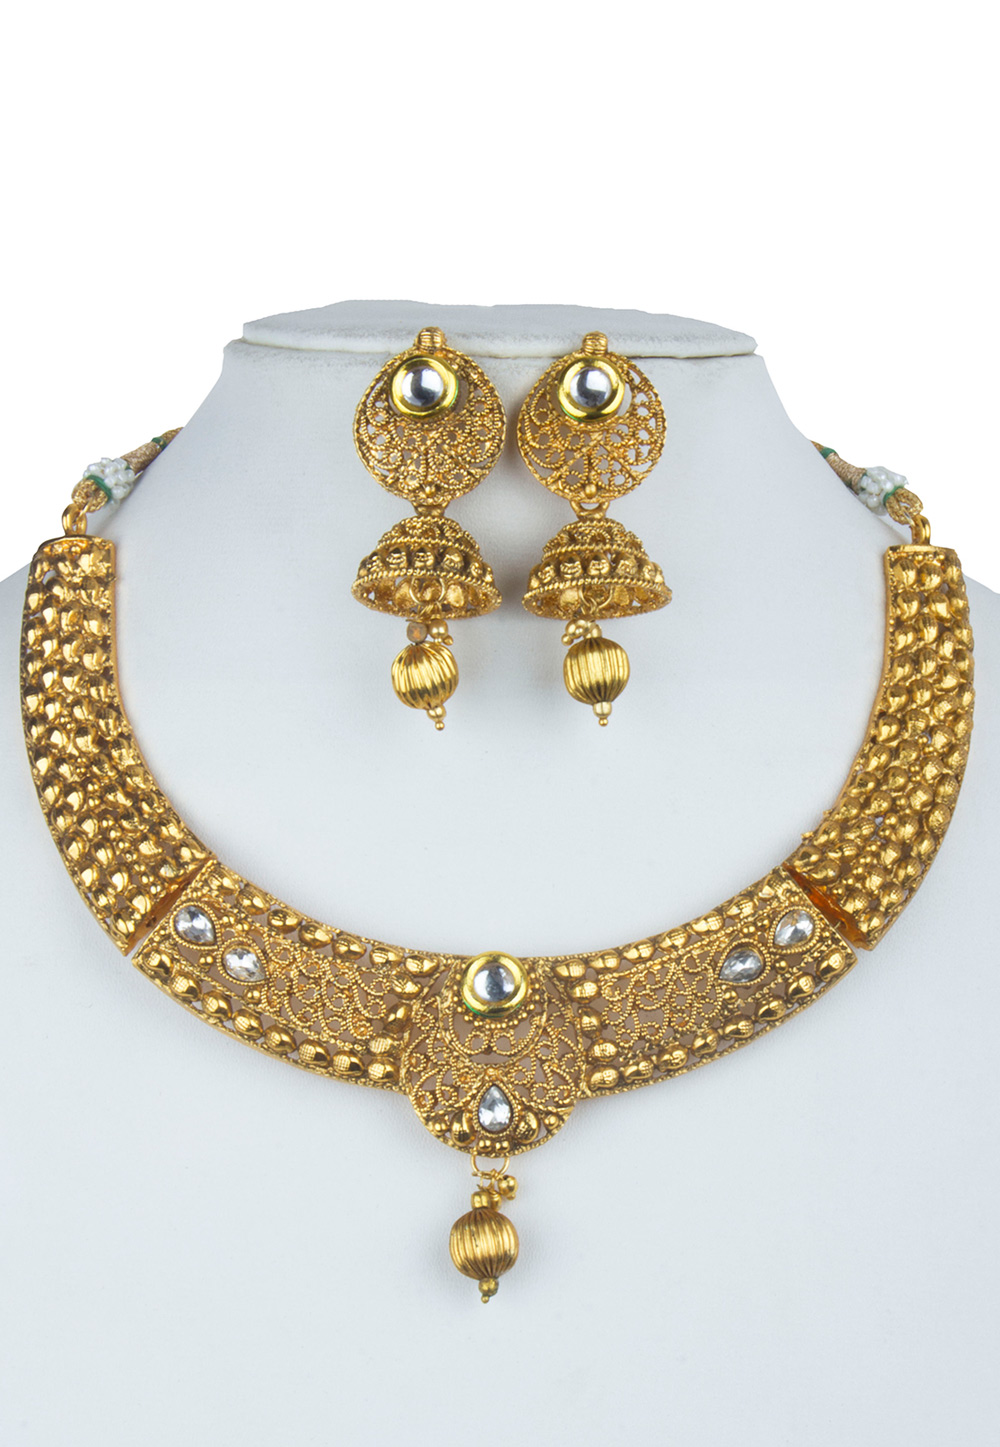 Golden Alloy Kundan Necklace With Earrings 156267